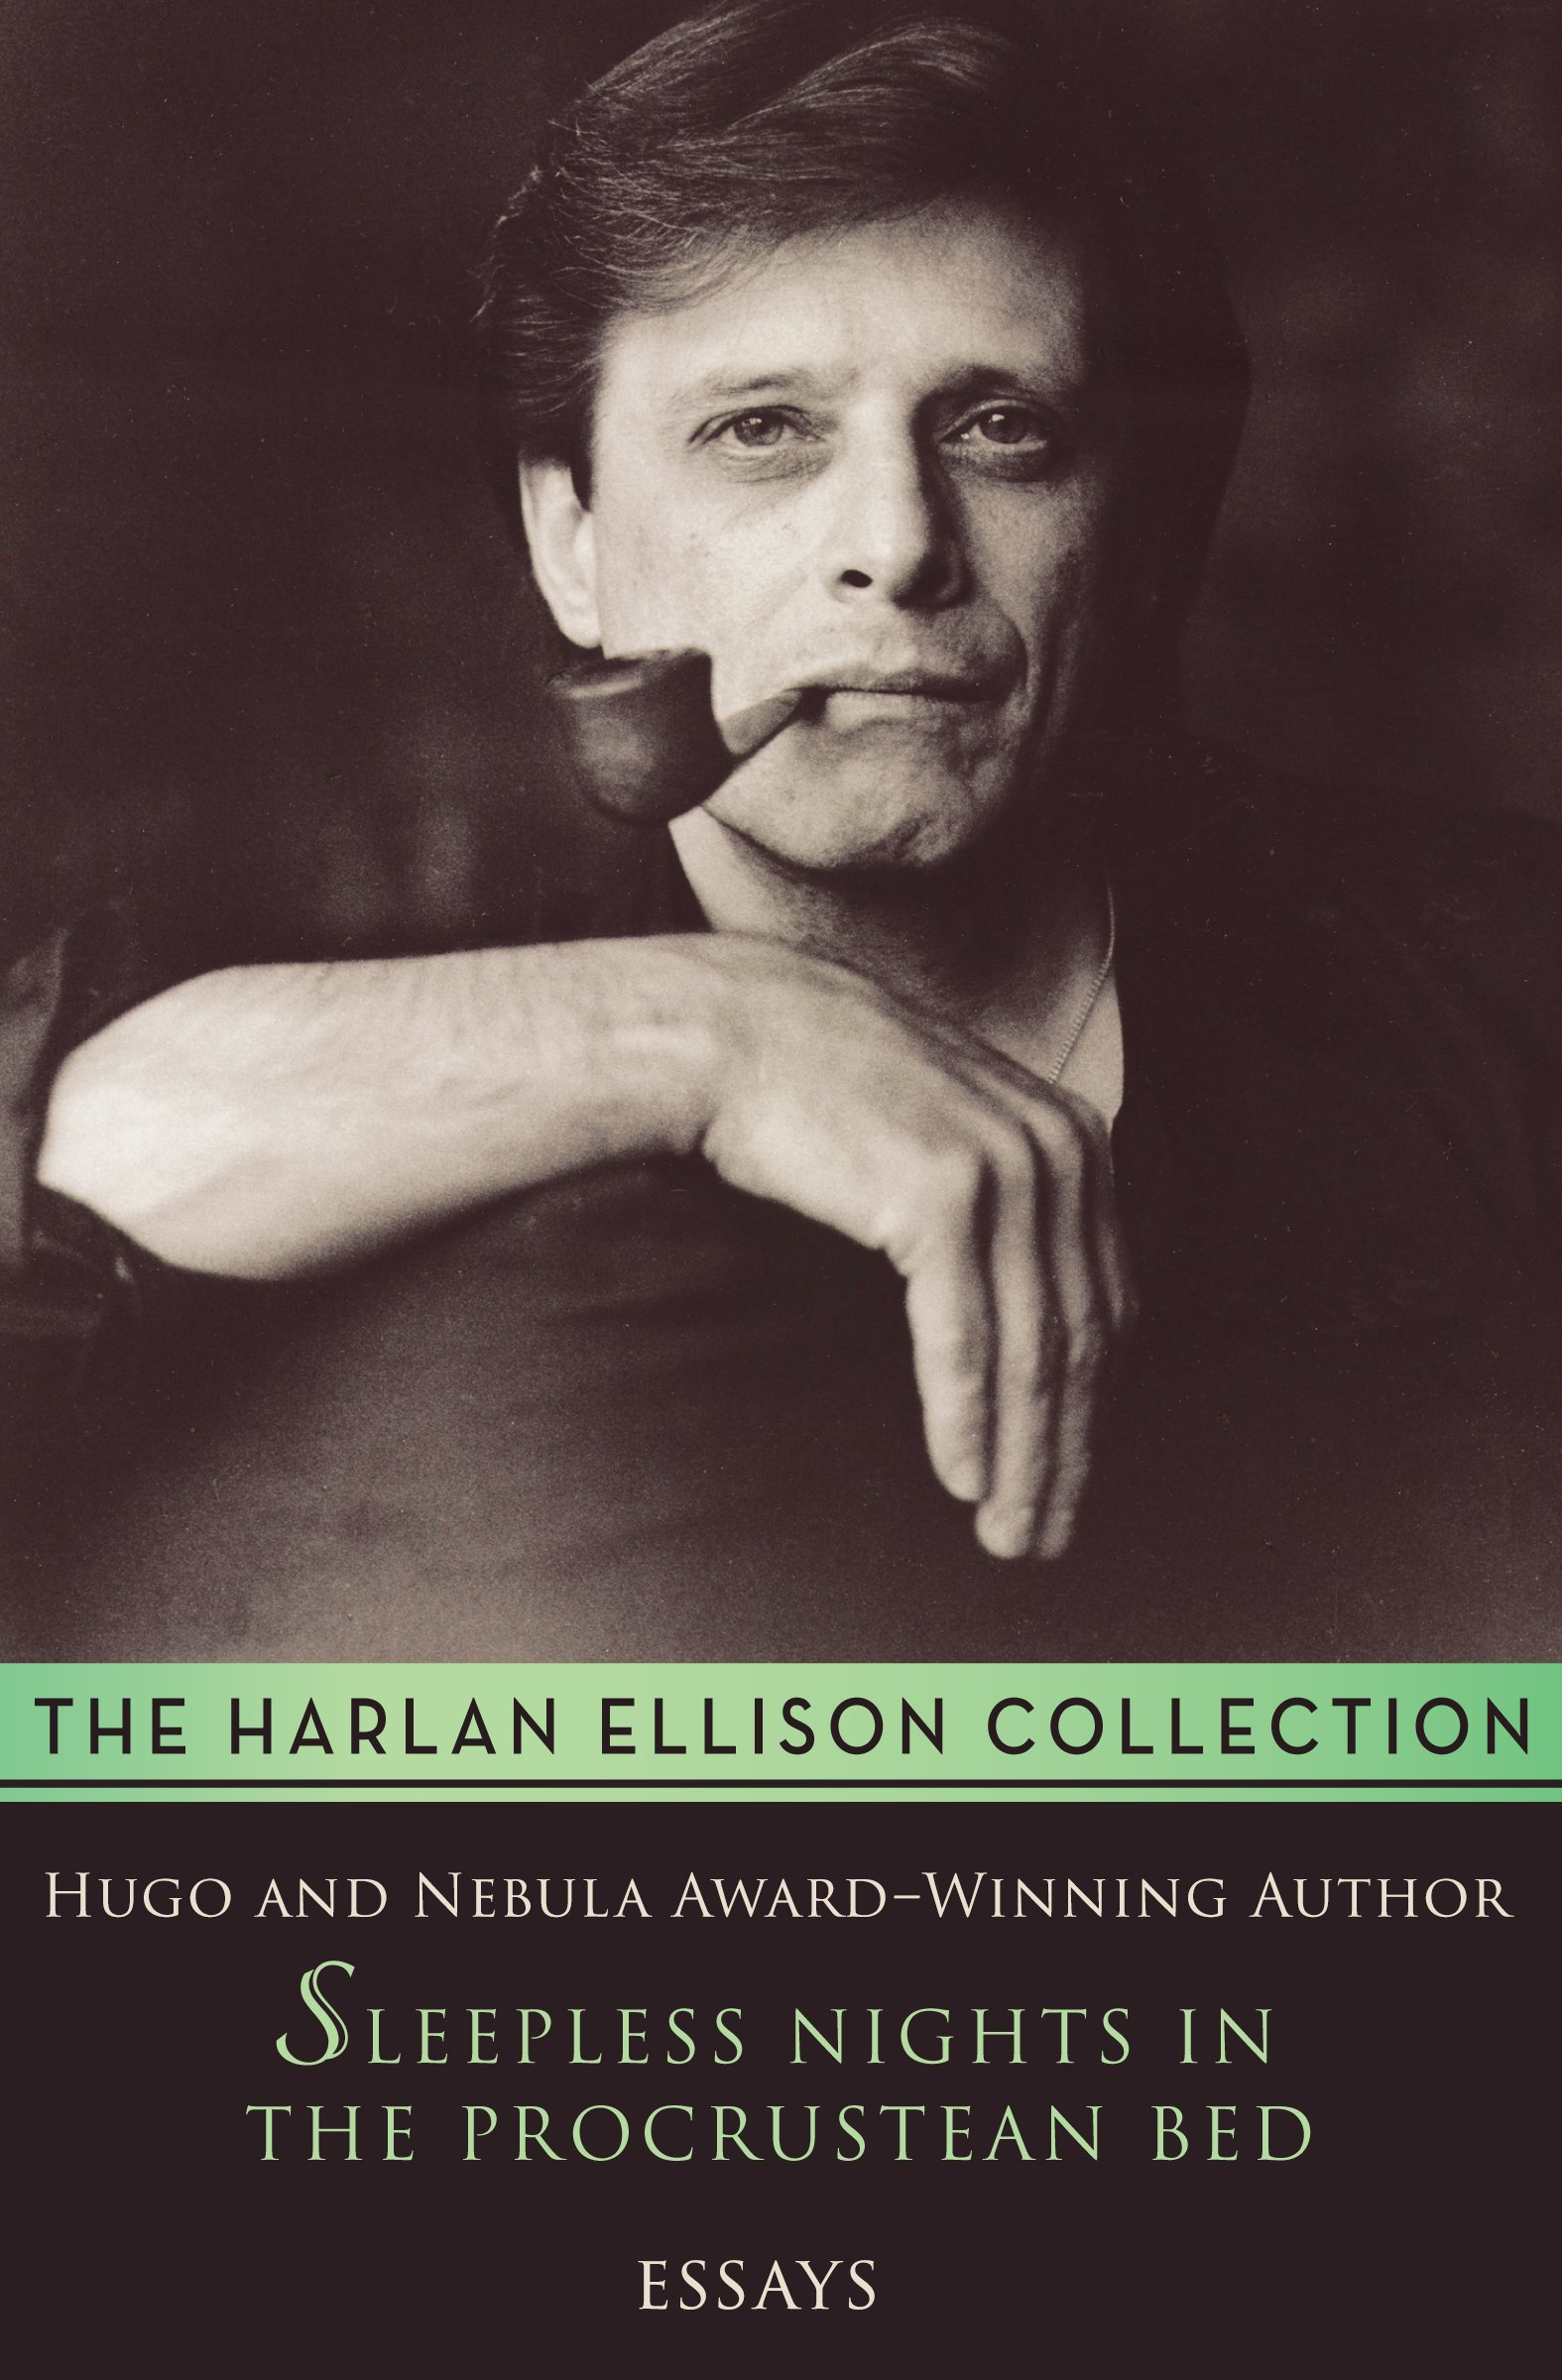 Sleepless Nights in the Procrustean Bed: Essays (Harlan Ellison Collection) PDF